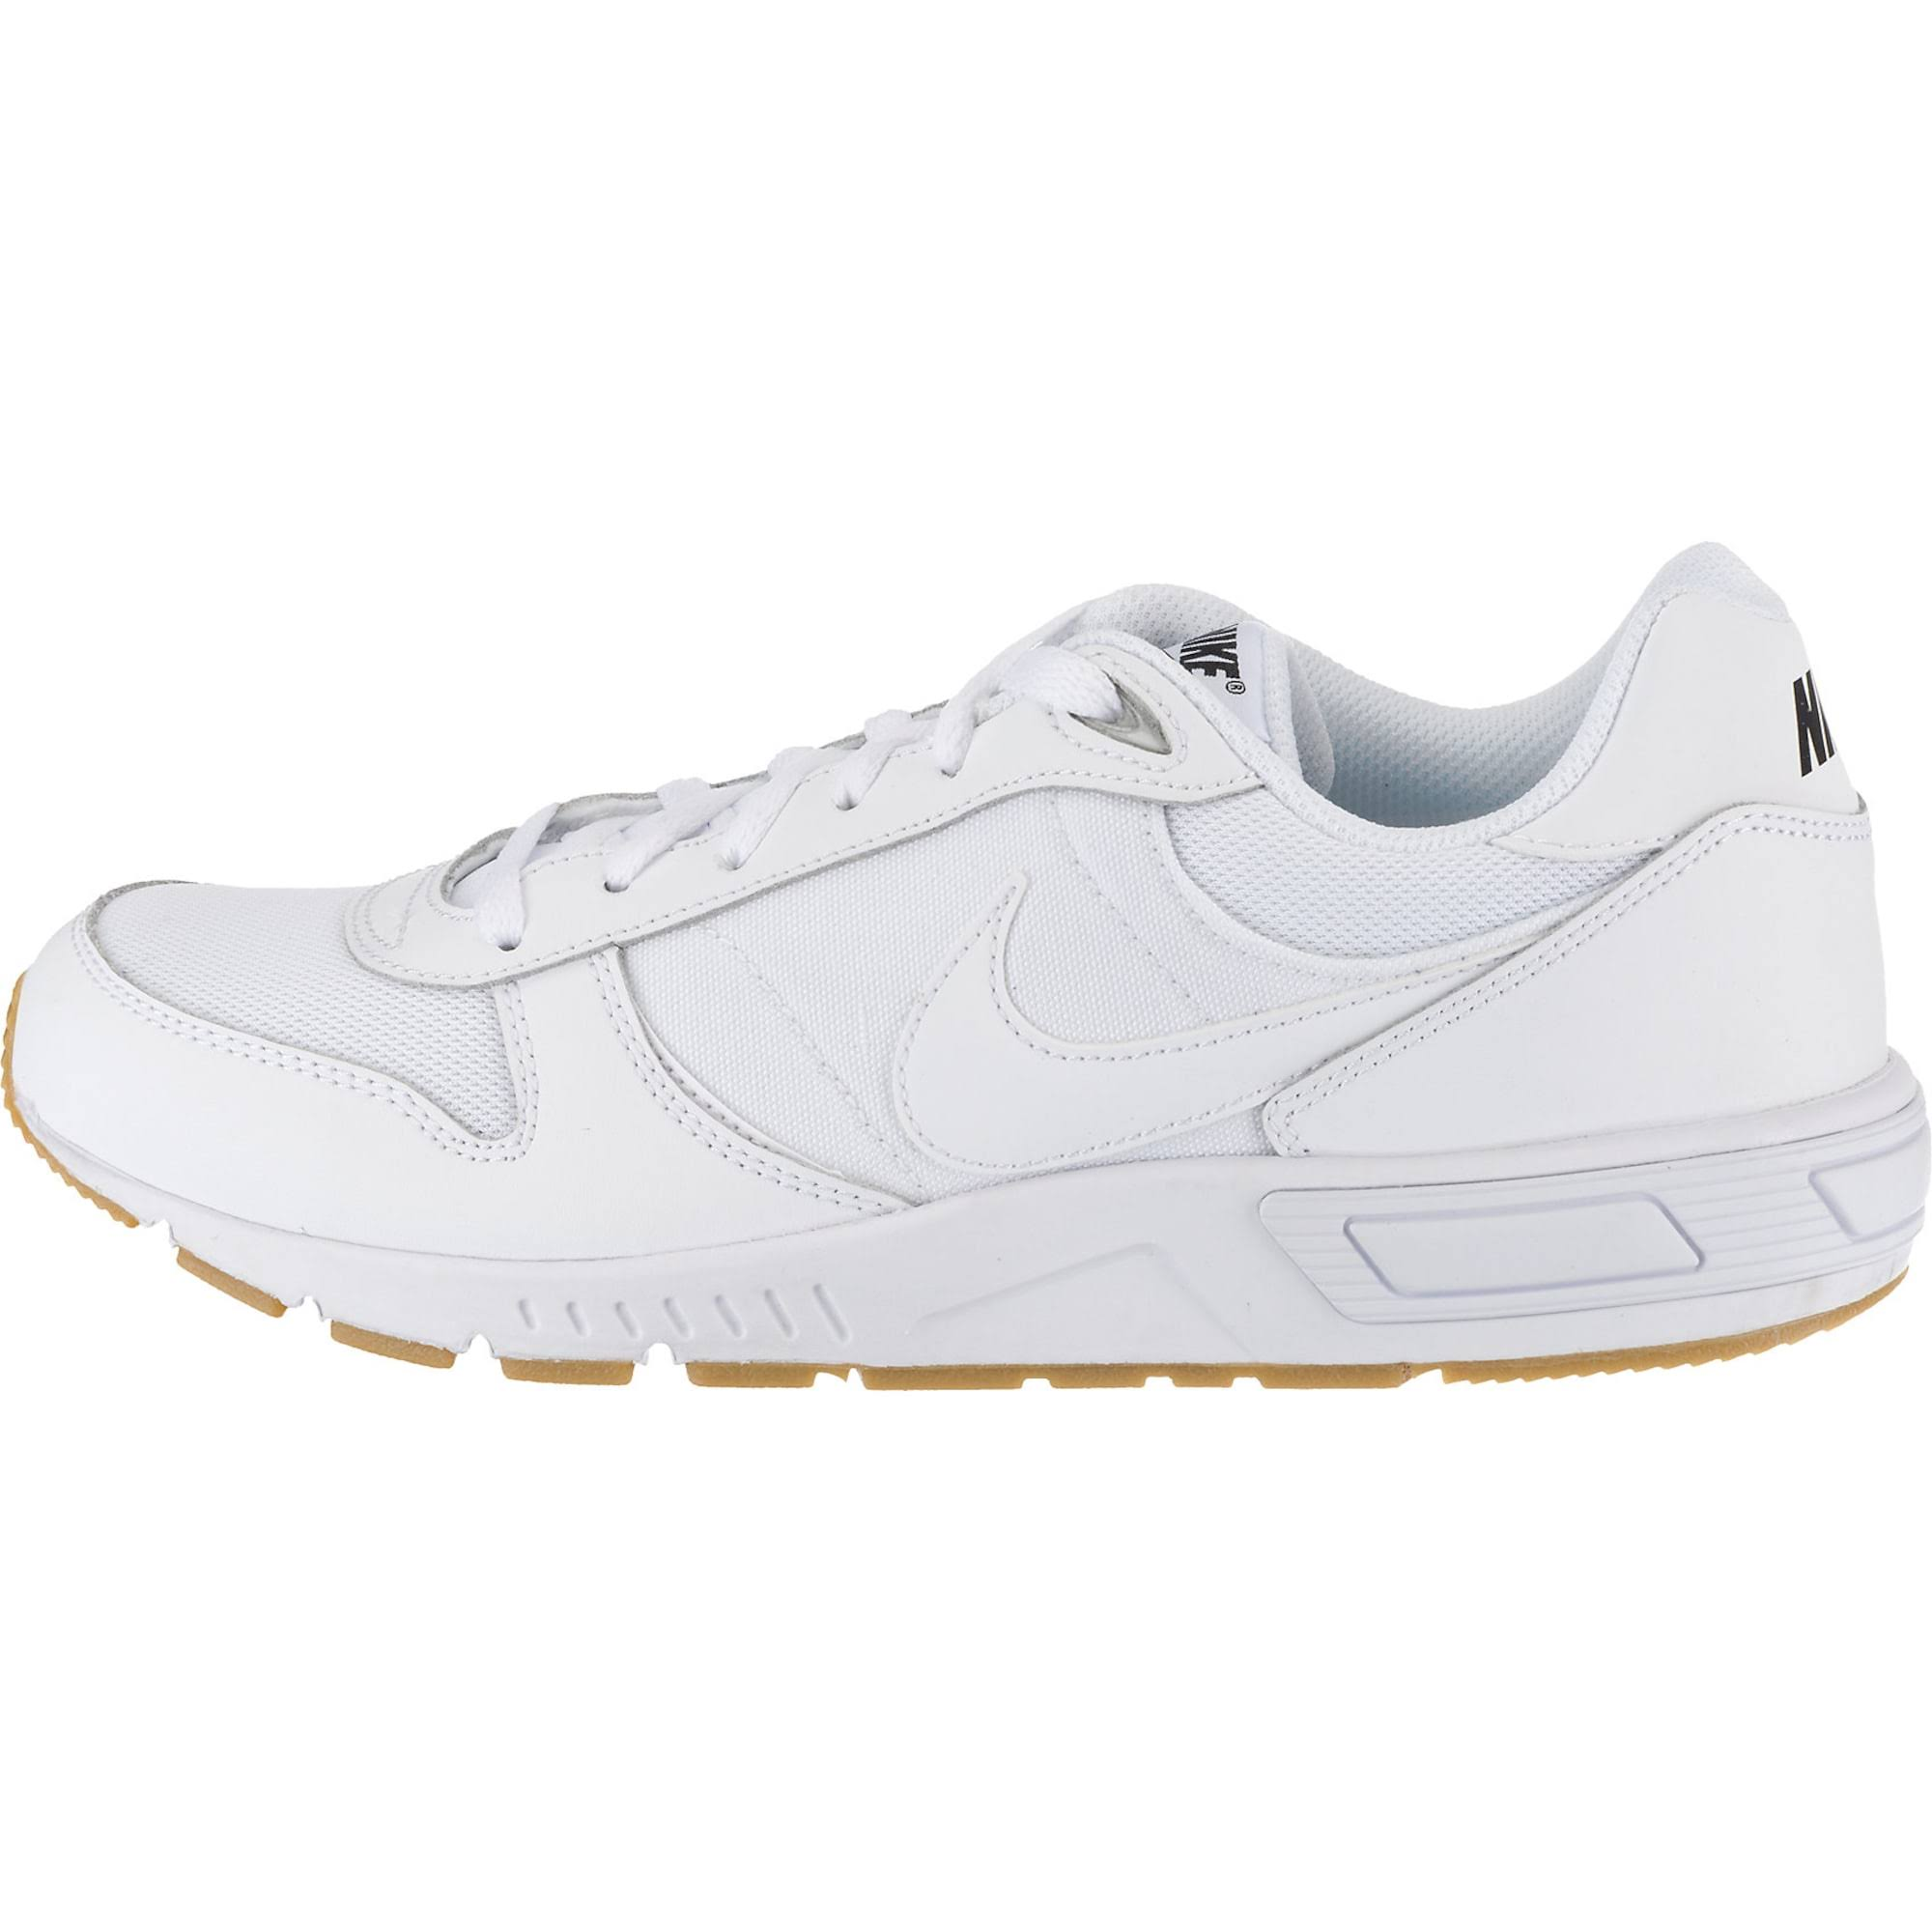 Shoes Running 644402 101 Mens Nightgazer Weiß Nike Trainers Sneakers xqgSCwY